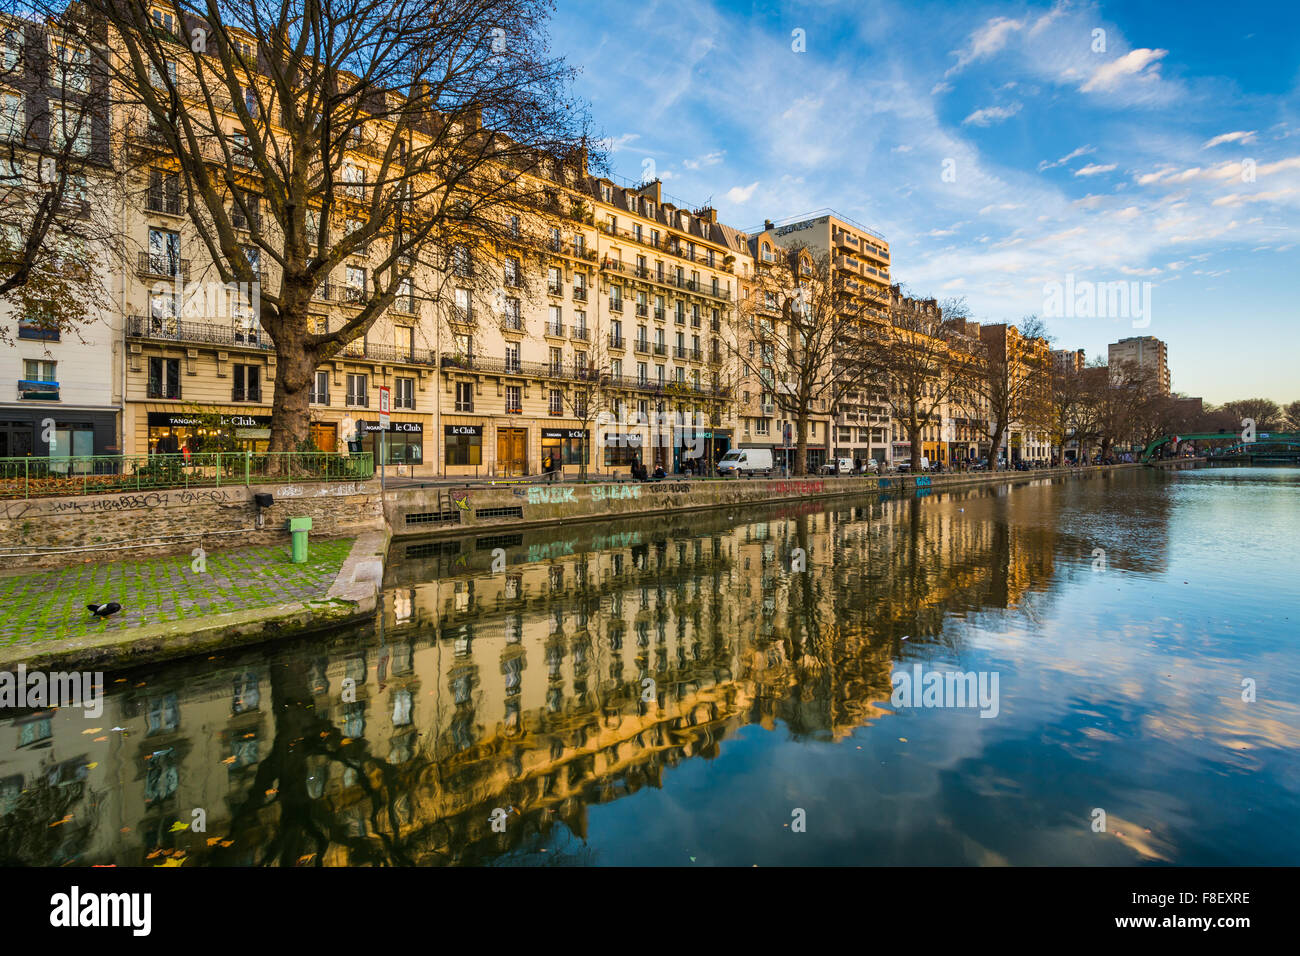 Buildings reflecting in Canal Saint-Martin, in Paris, France. - Stock Image